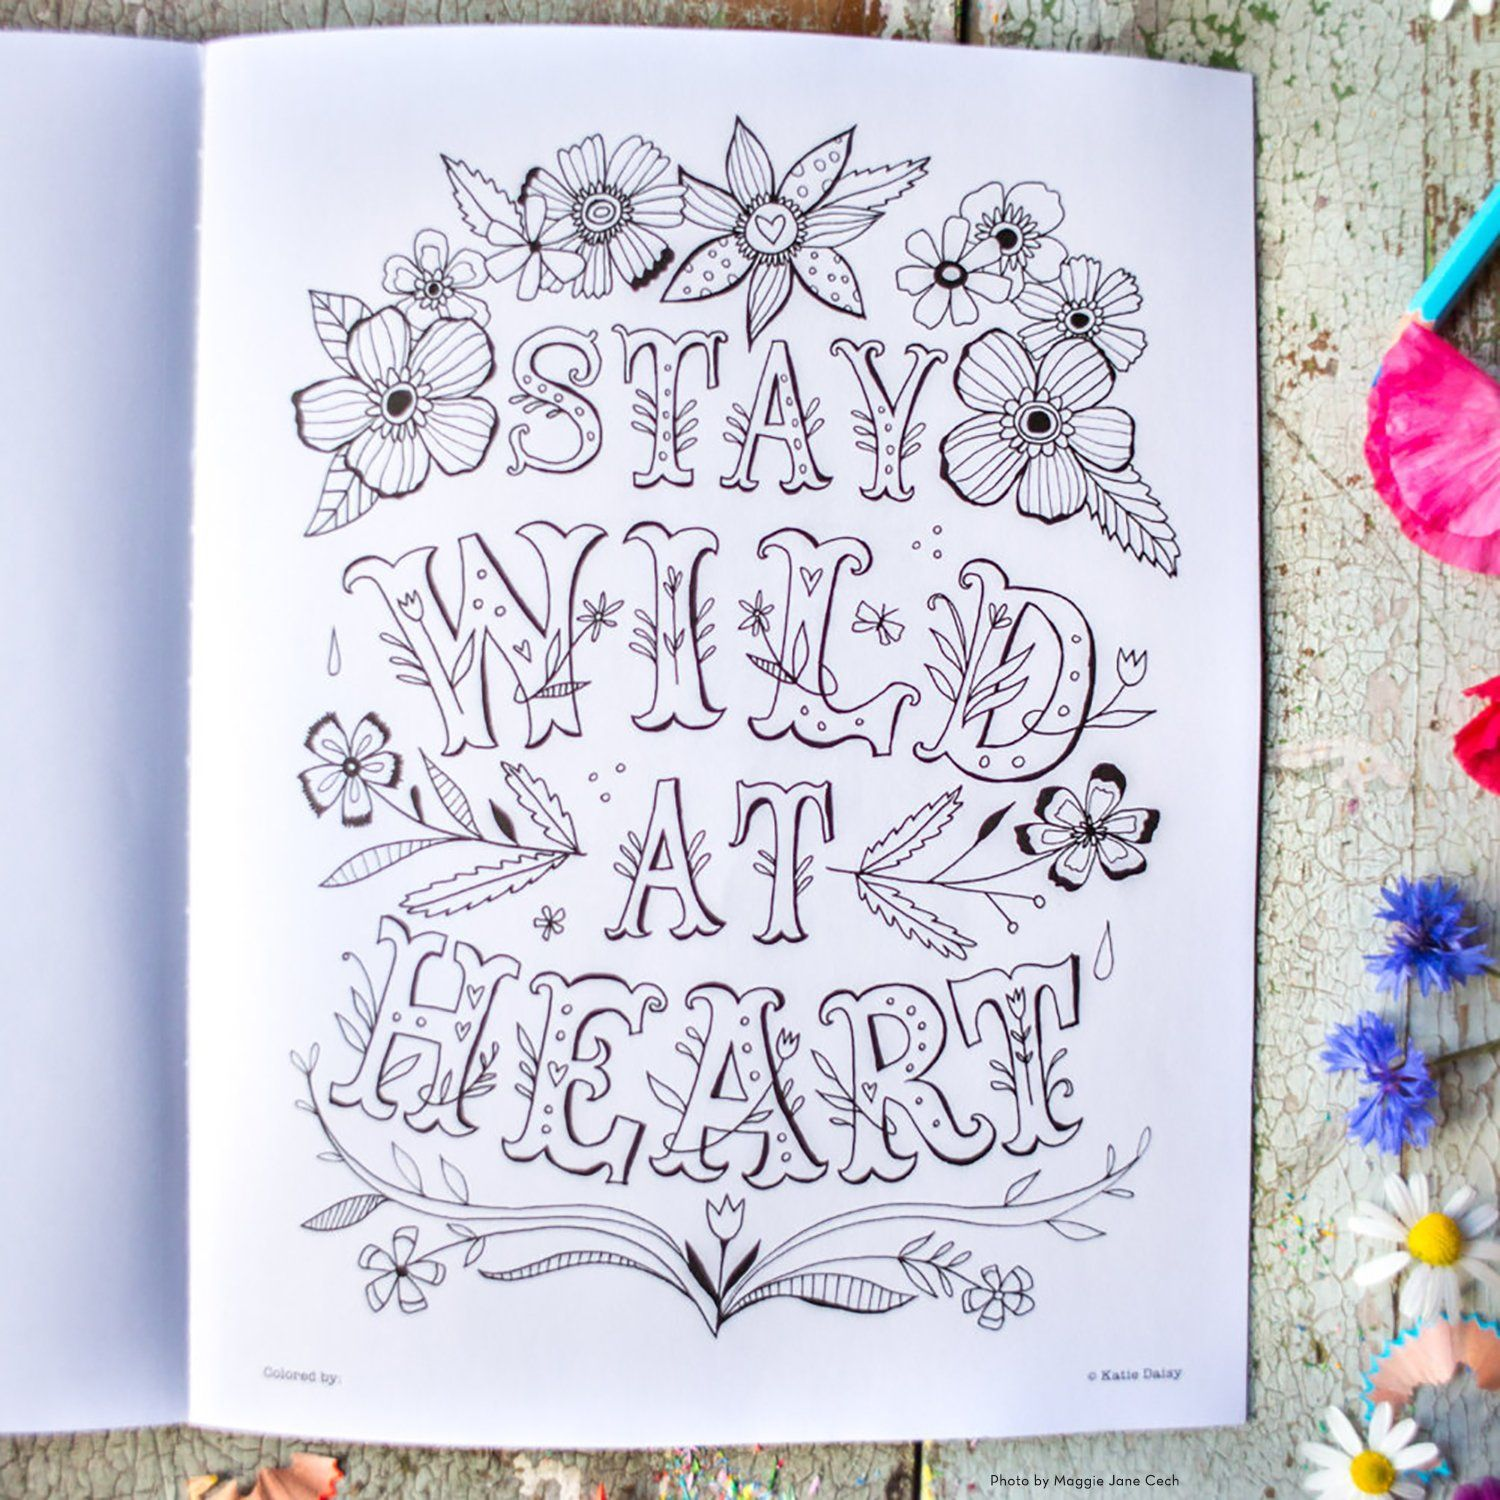 Amazon Com Create Magic A Coloring Book By Katie Daisy For Adults And Kids At Heart 9781631362422 Katie Daisy Amb Heart For Kids Coloring Books Daisy Art